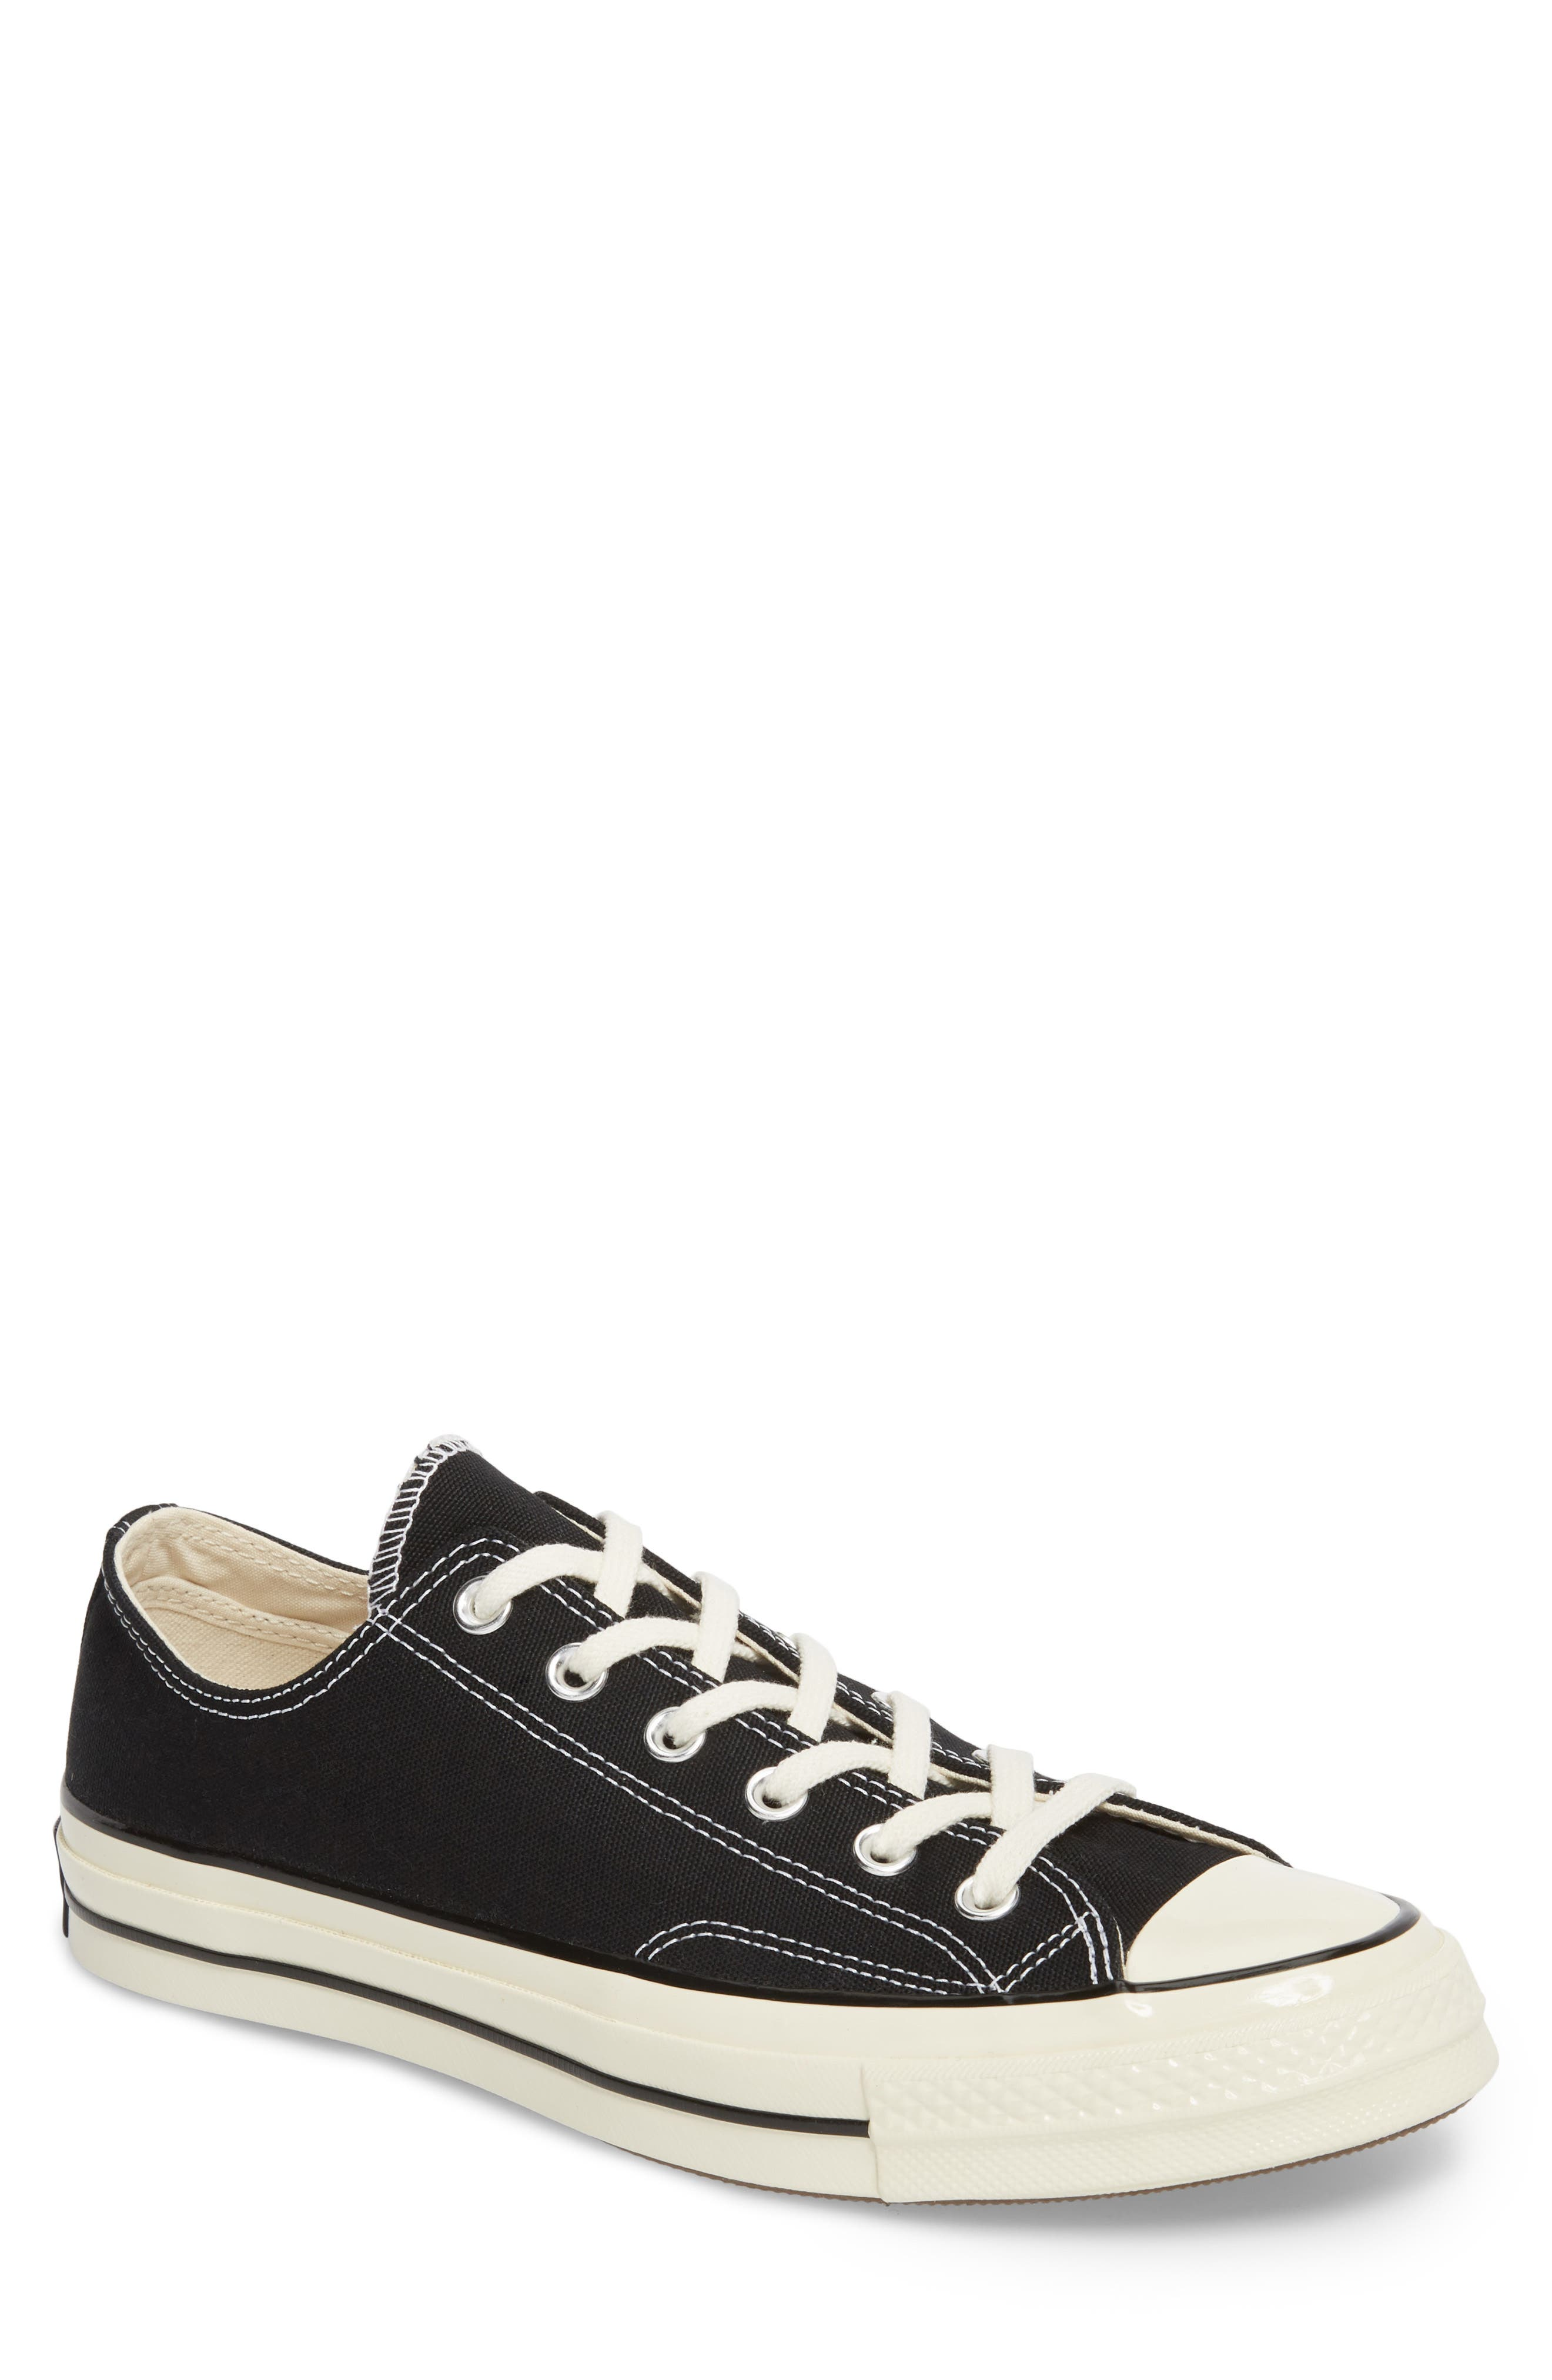 Chuck Taylor<sup>®</sup> All Star<sup>®</sup> 70 Low Top Sneaker,                             Main thumbnail 1, color,                             BLACK